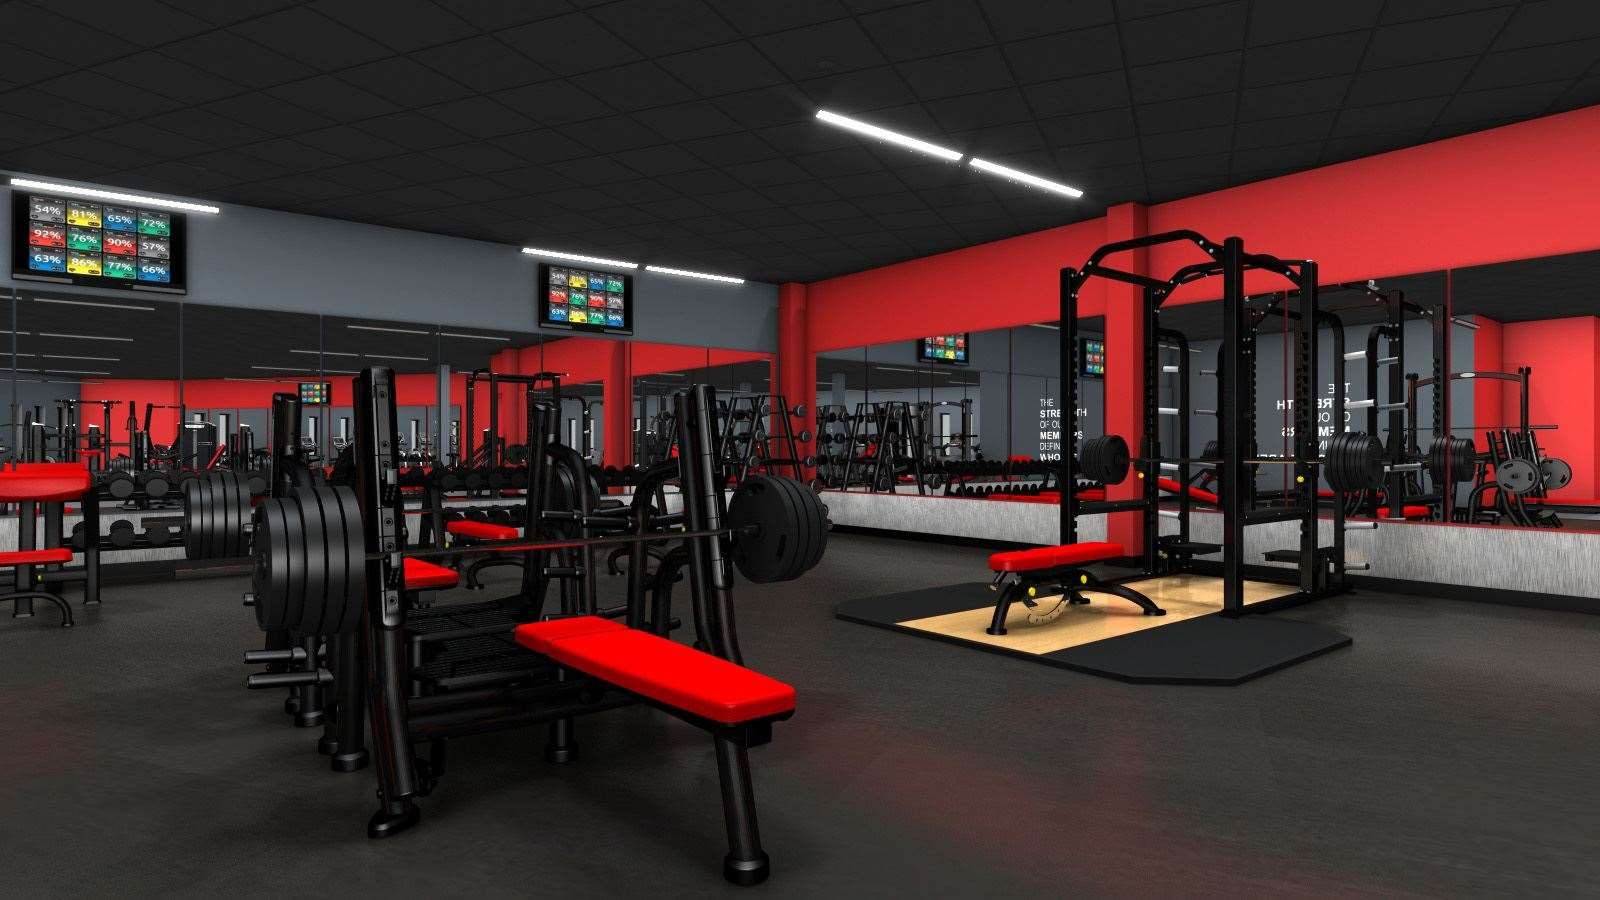 An artist impression of what the gym will look like